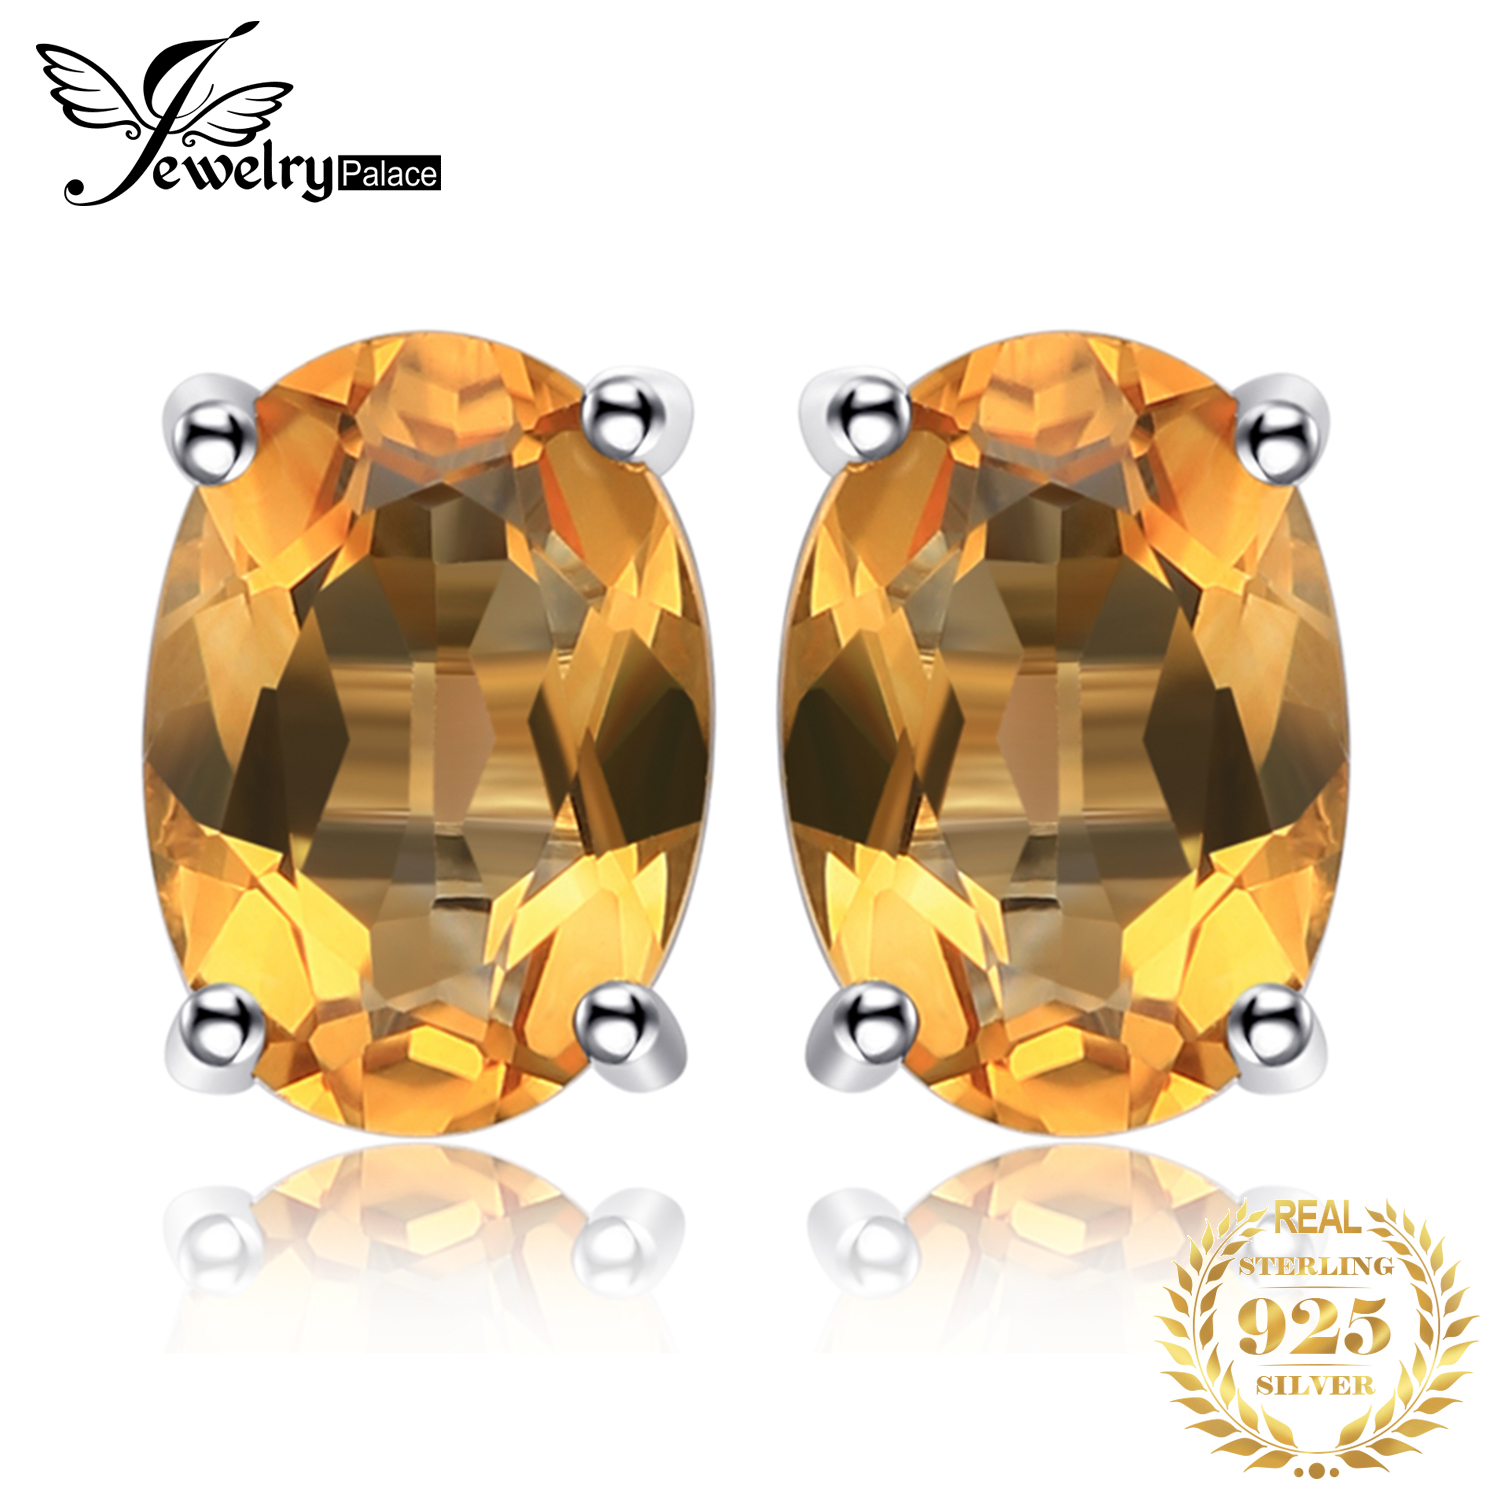 JewelryPalace 1.4ct Genuine Citrine Stud Earrings 925 Sterling Silver Earrings For Women Korean Earings Fashion Jewelry 2020